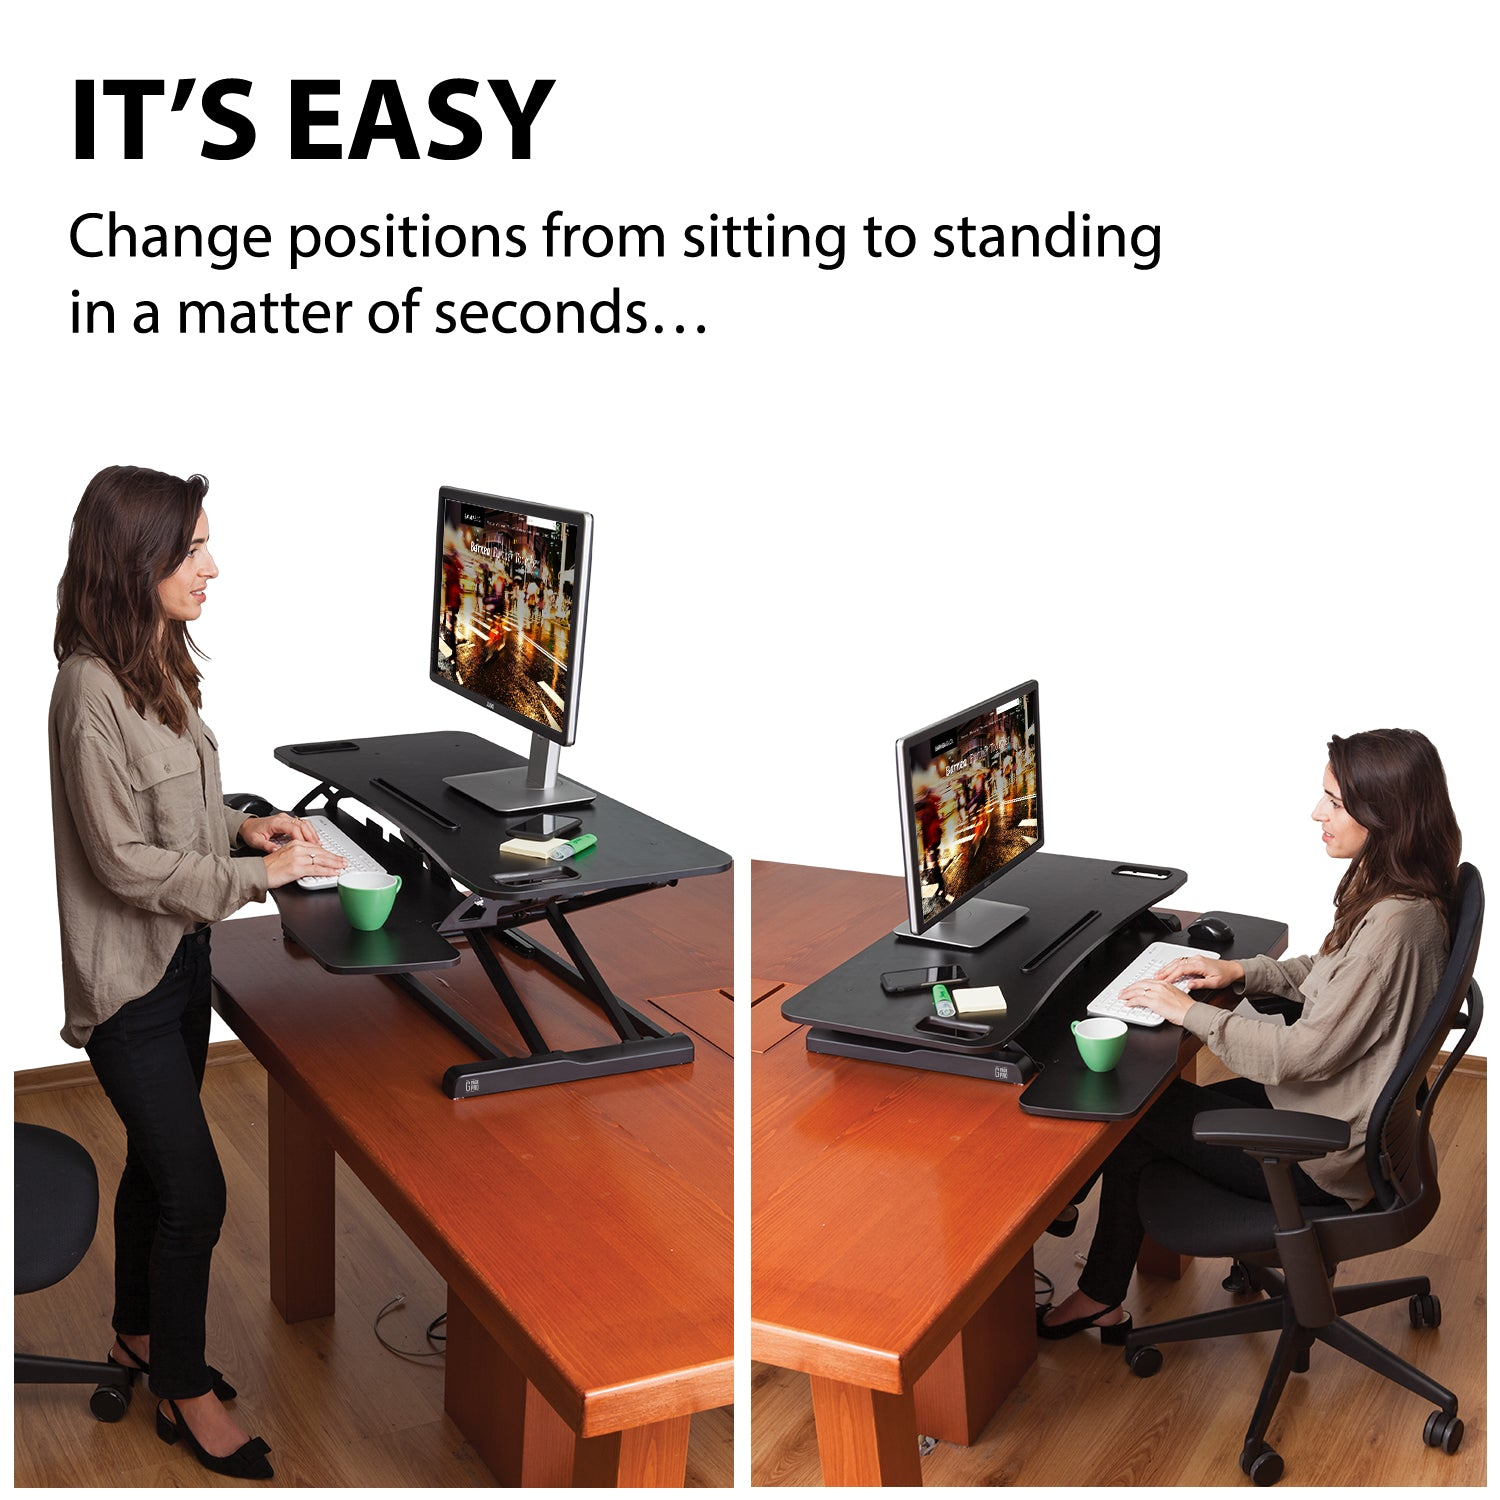 g pack pro x35 adjustable standing desk converter elite height adjustable sit stand lift office computer workspace with gas spring riser ergonomic - Height Adjustable Standing Desk